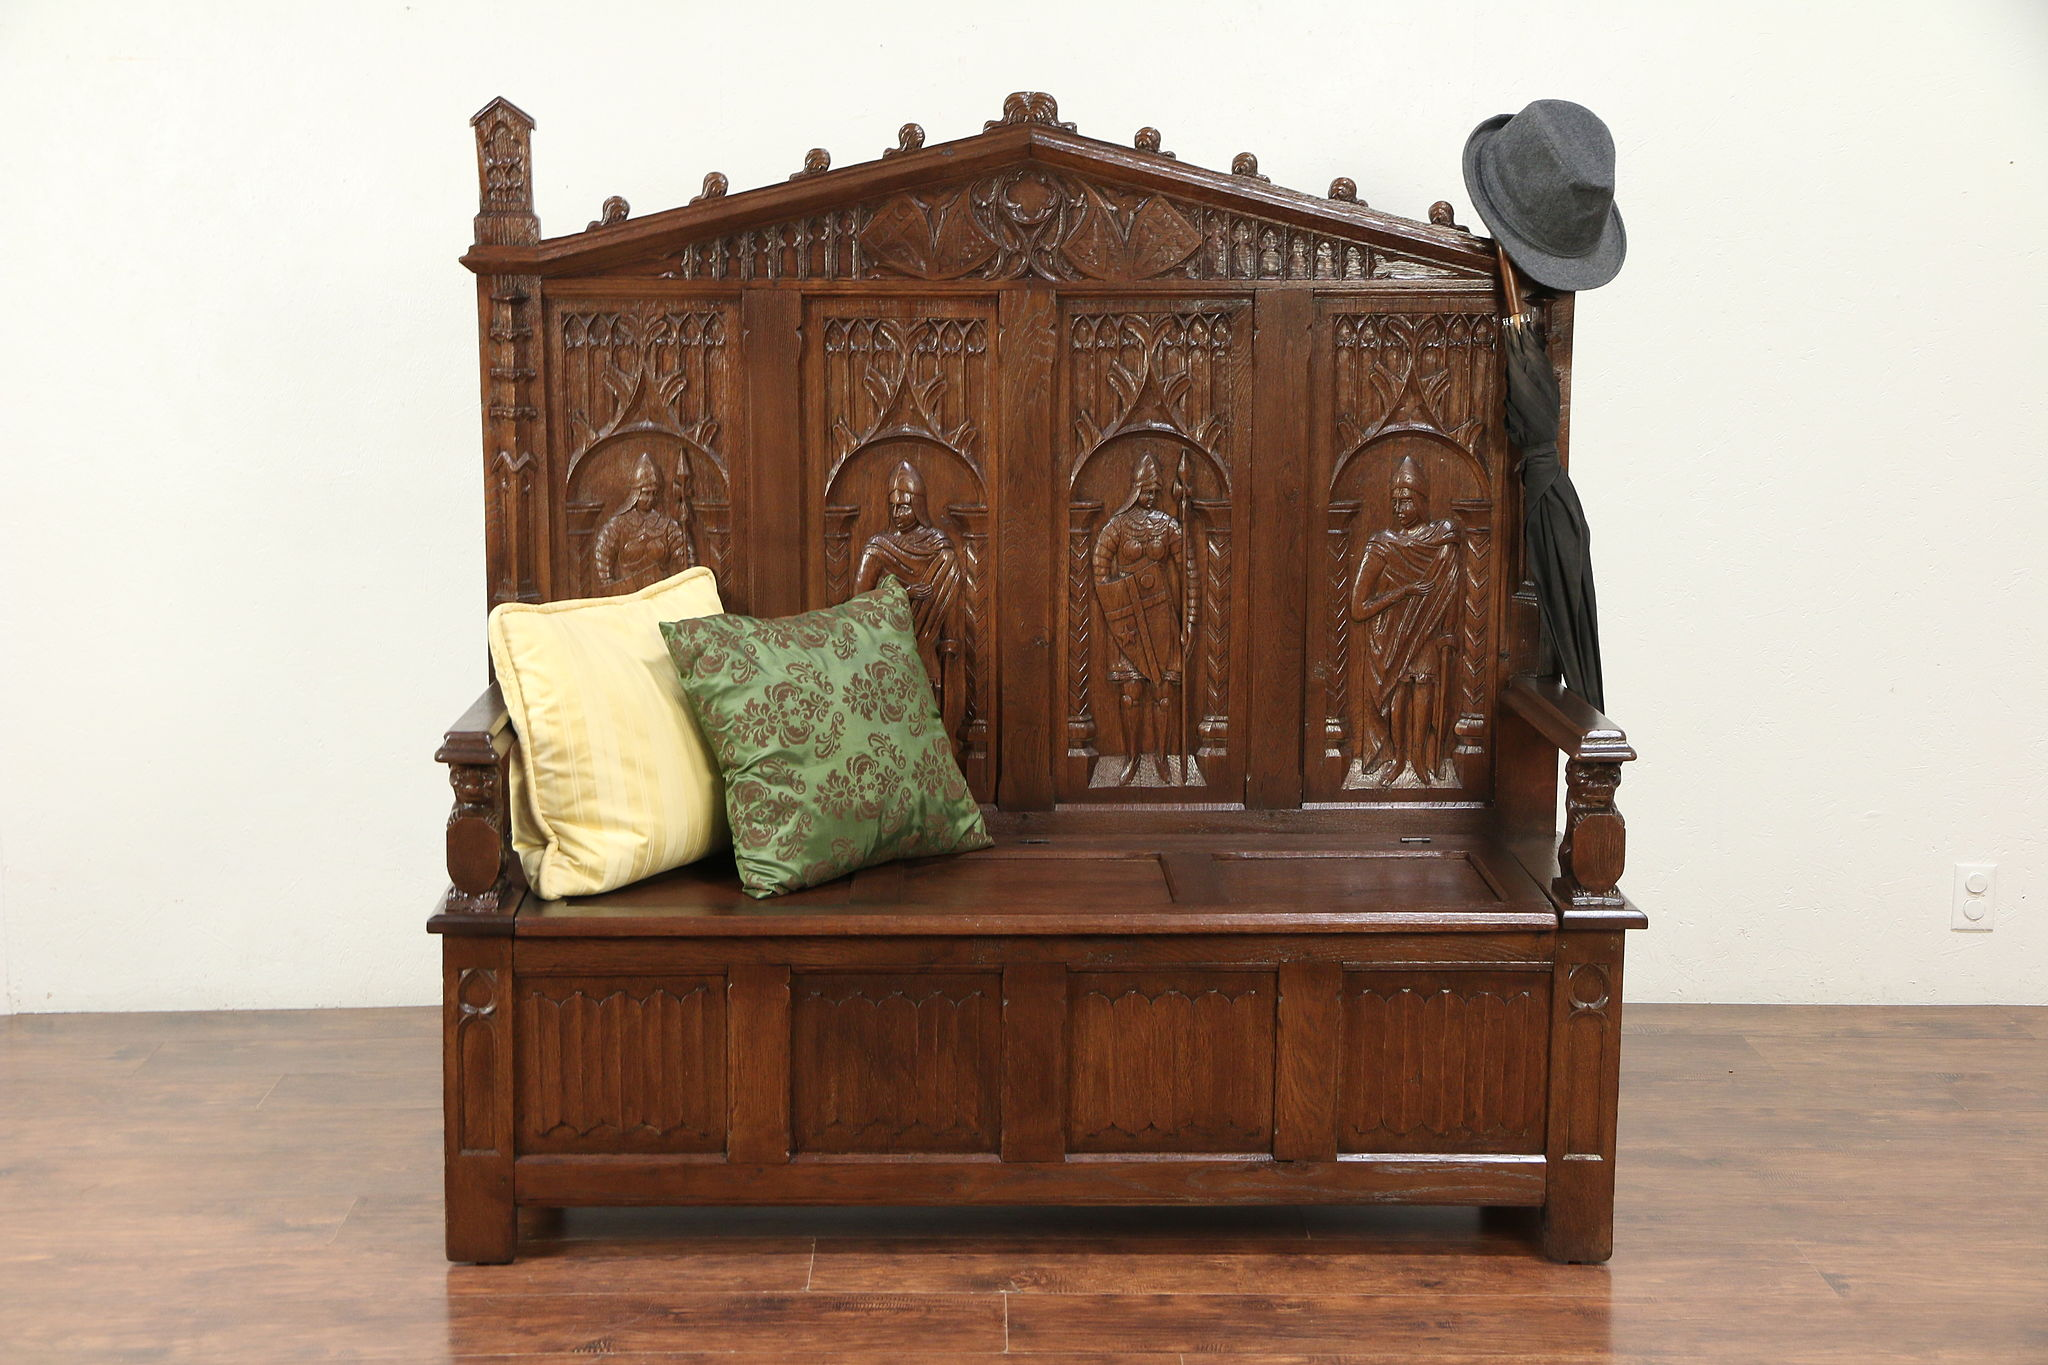 Sold Gothic Belgian Antique Oak Hall Bench Carved Knights Lions 29849 Harp Gallery Antiques Furniture